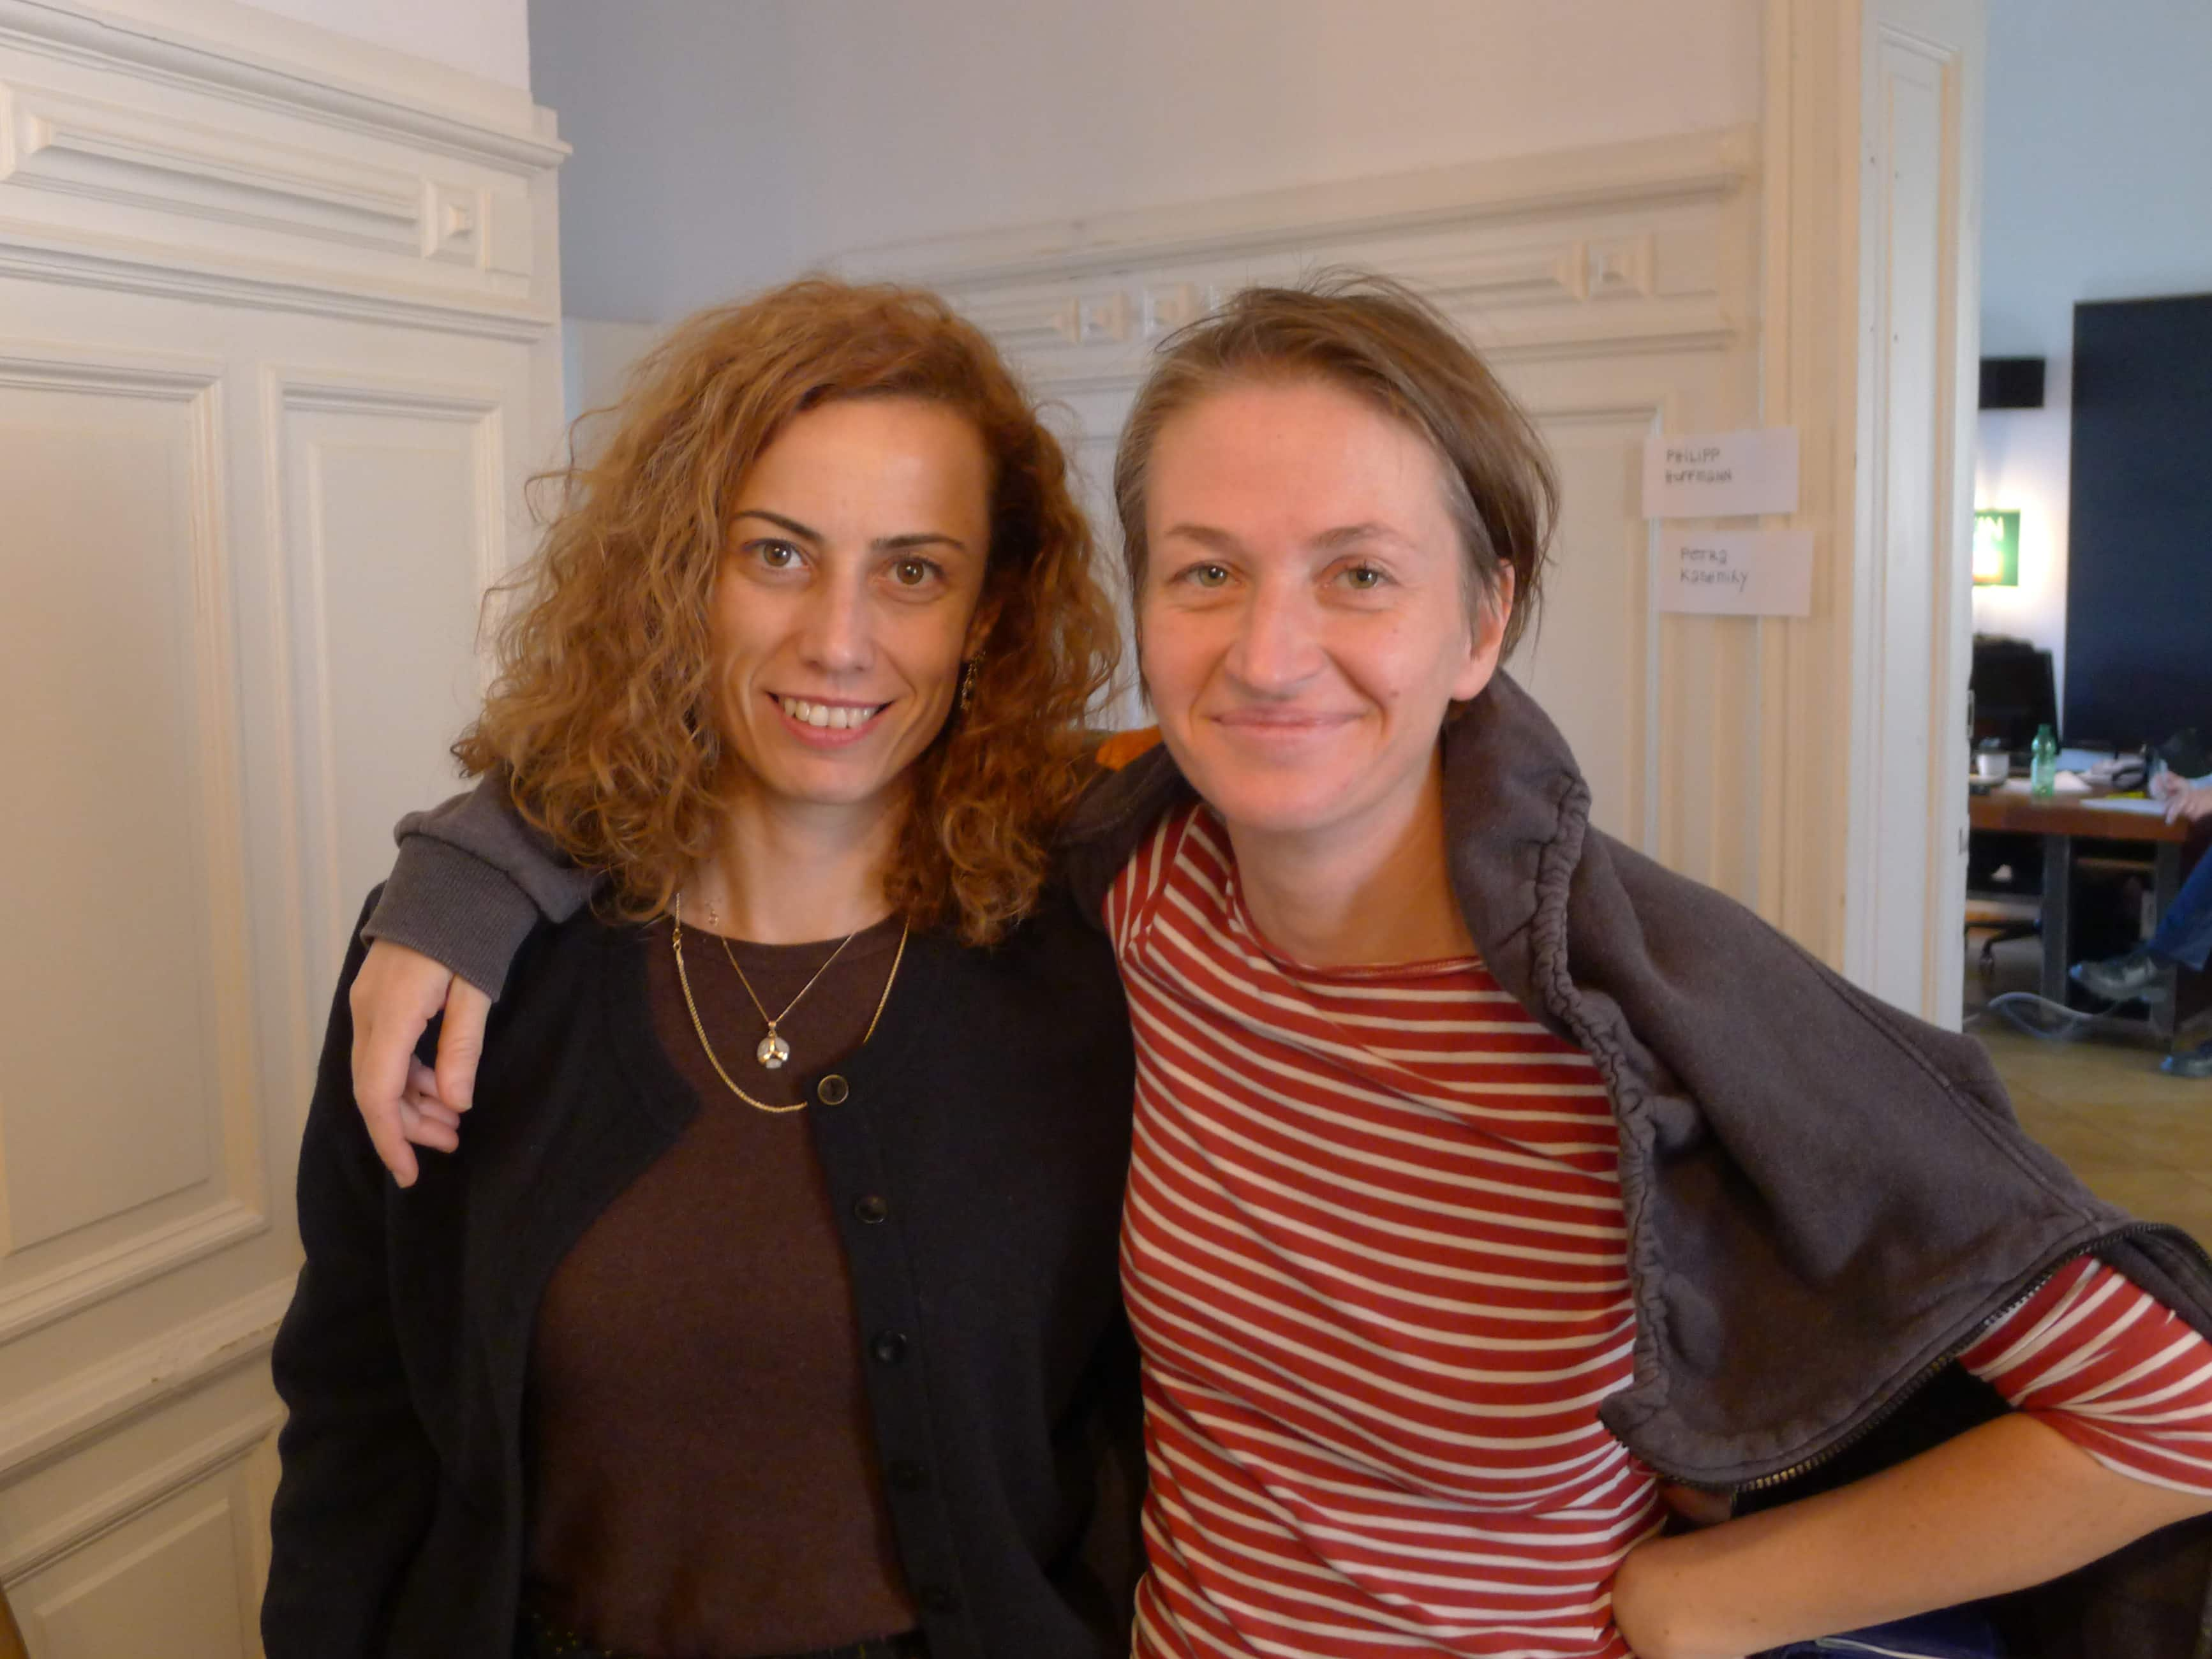 Berlin Film Residencies – BERLIN AiR fellow Zeynep Dadak meets NIPKOW fellow Petra Seliškar